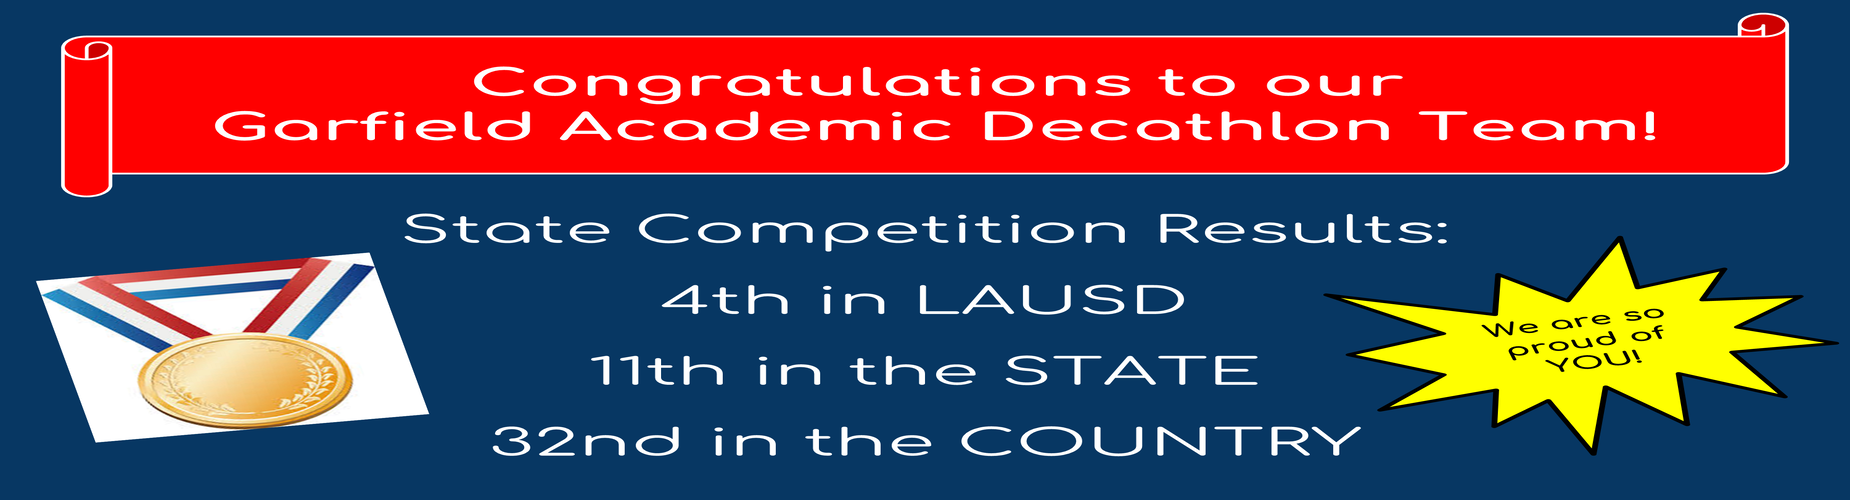 Congratulating our Decathlon Team for 4th in LAUSD and 11th in State